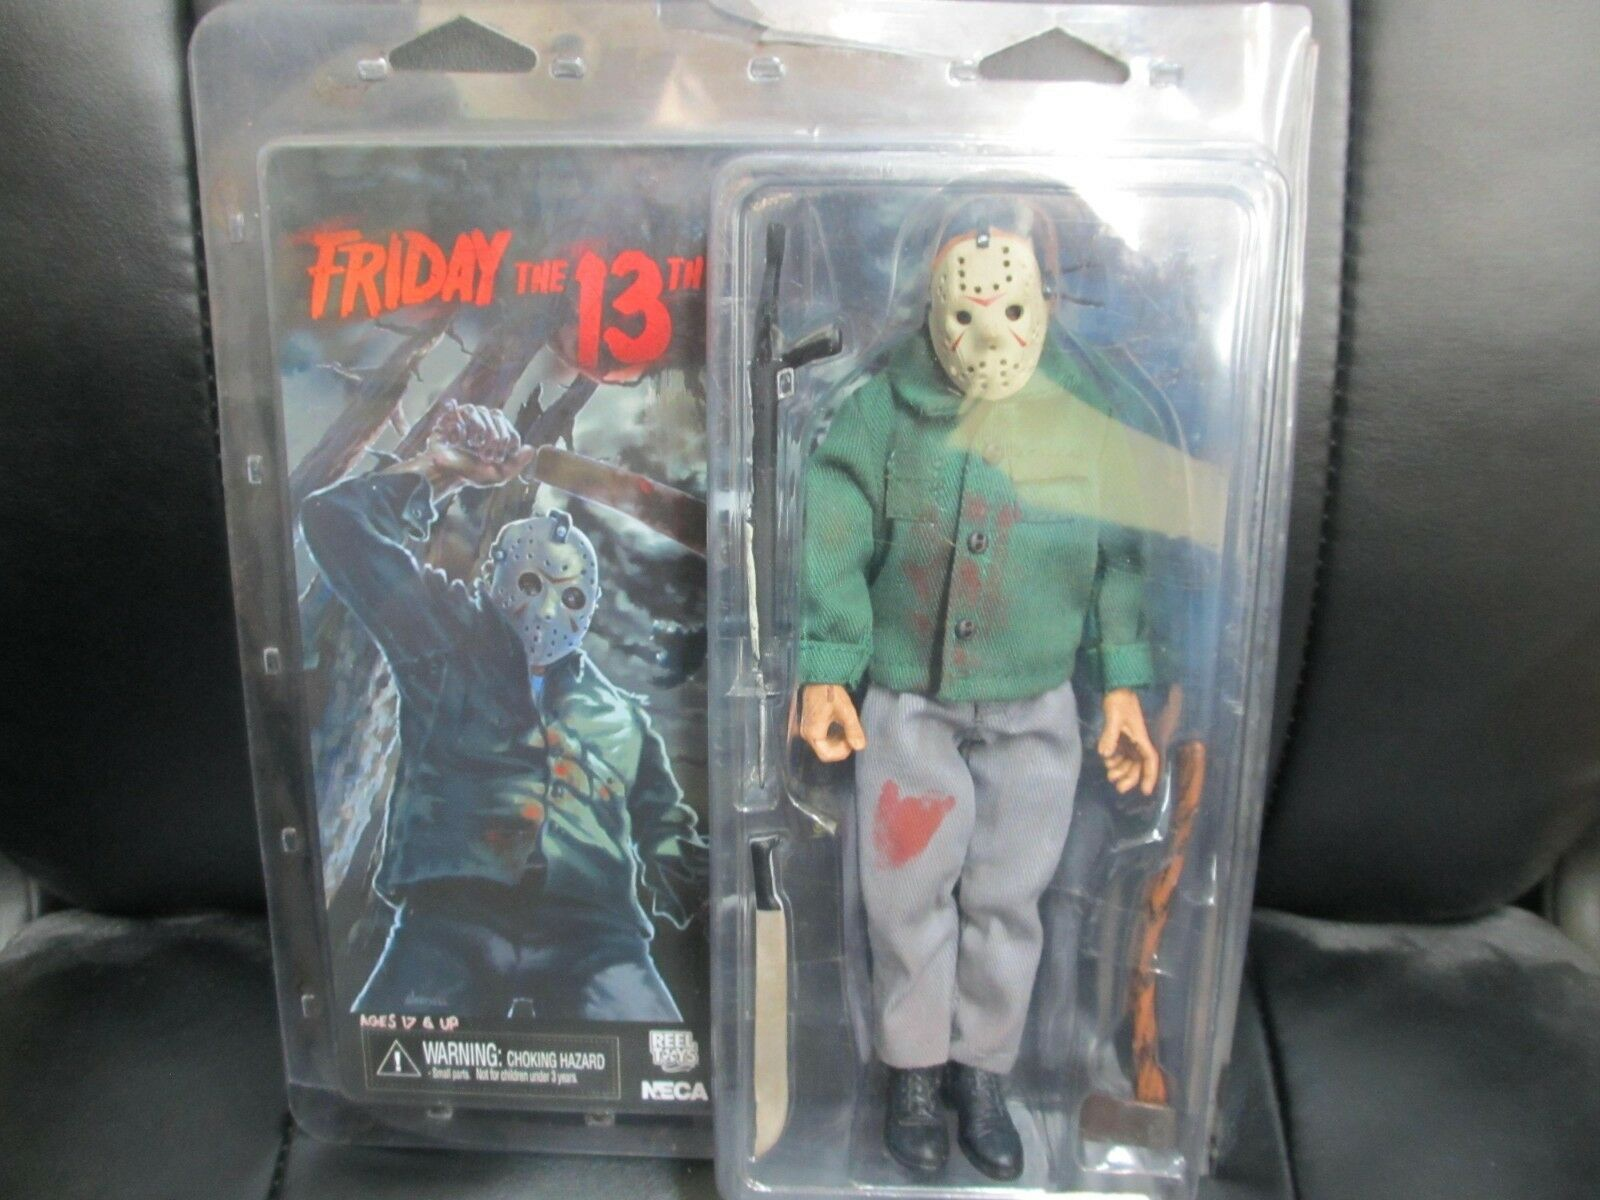 NECA FRIDAY THE 13TH JASON VOORHEES 8